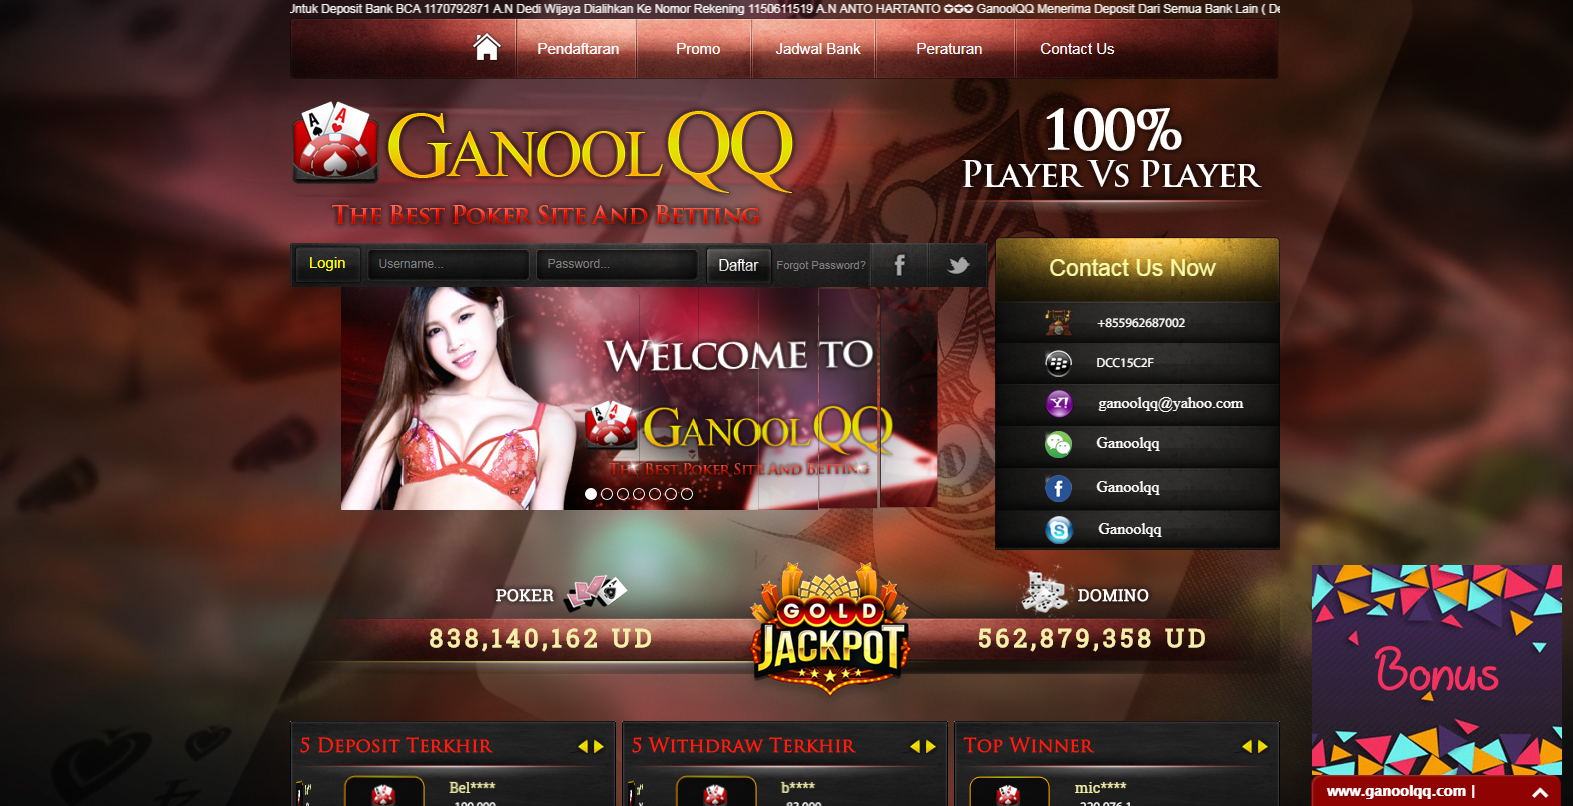 Can You Make A Lot Of Money By Playing Online Gambling Games?